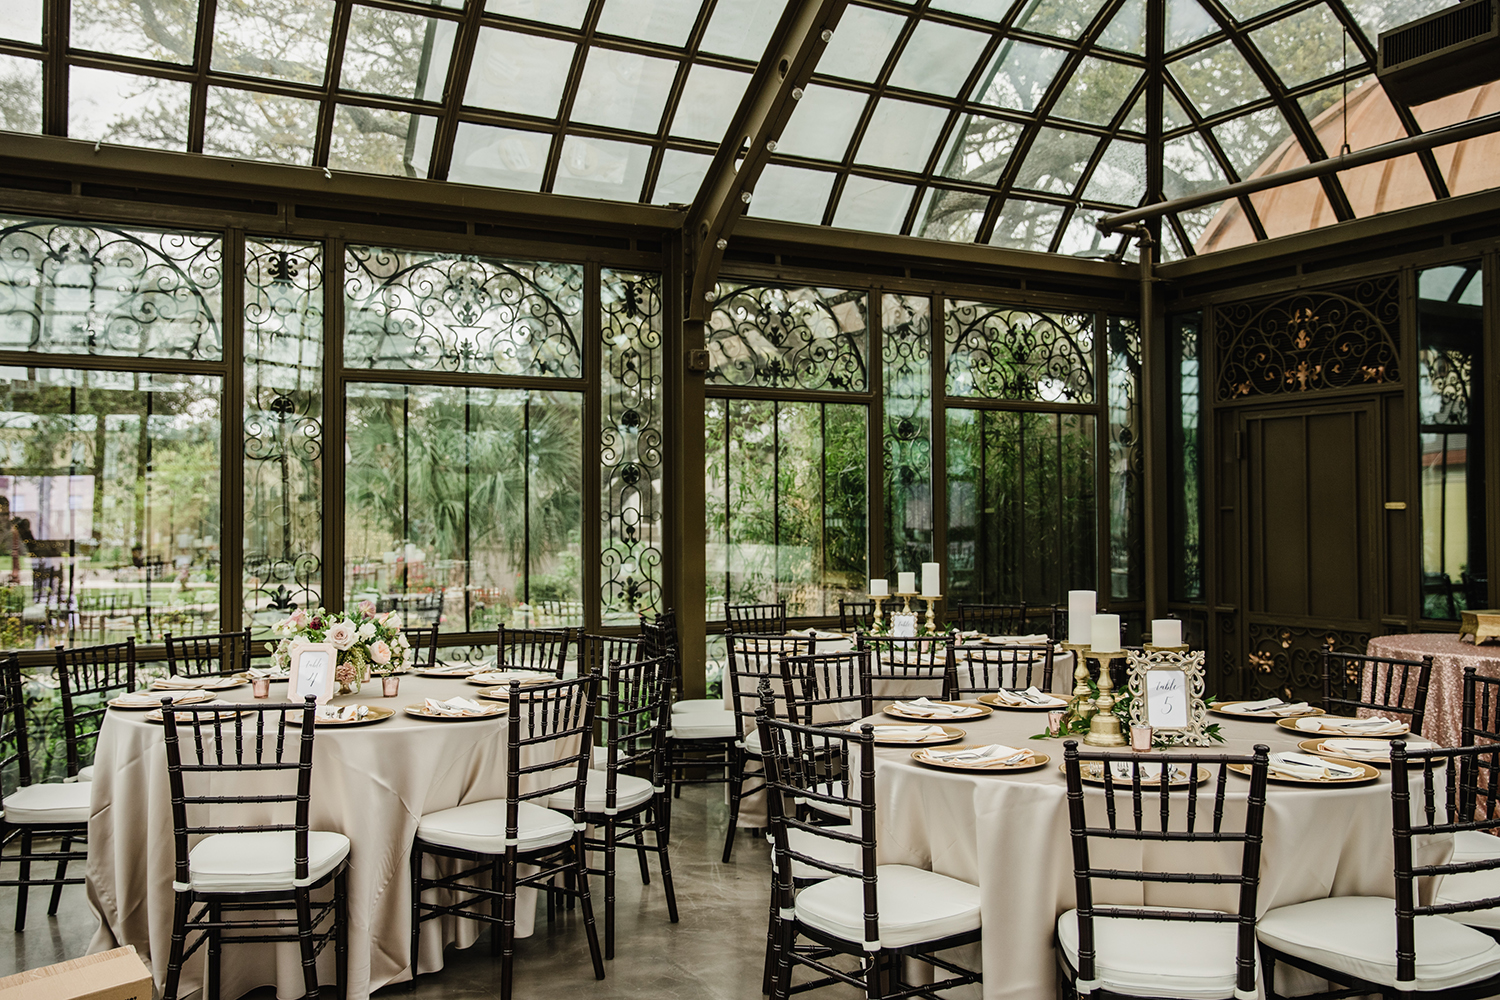 unique - windows - natural light - wedding reception